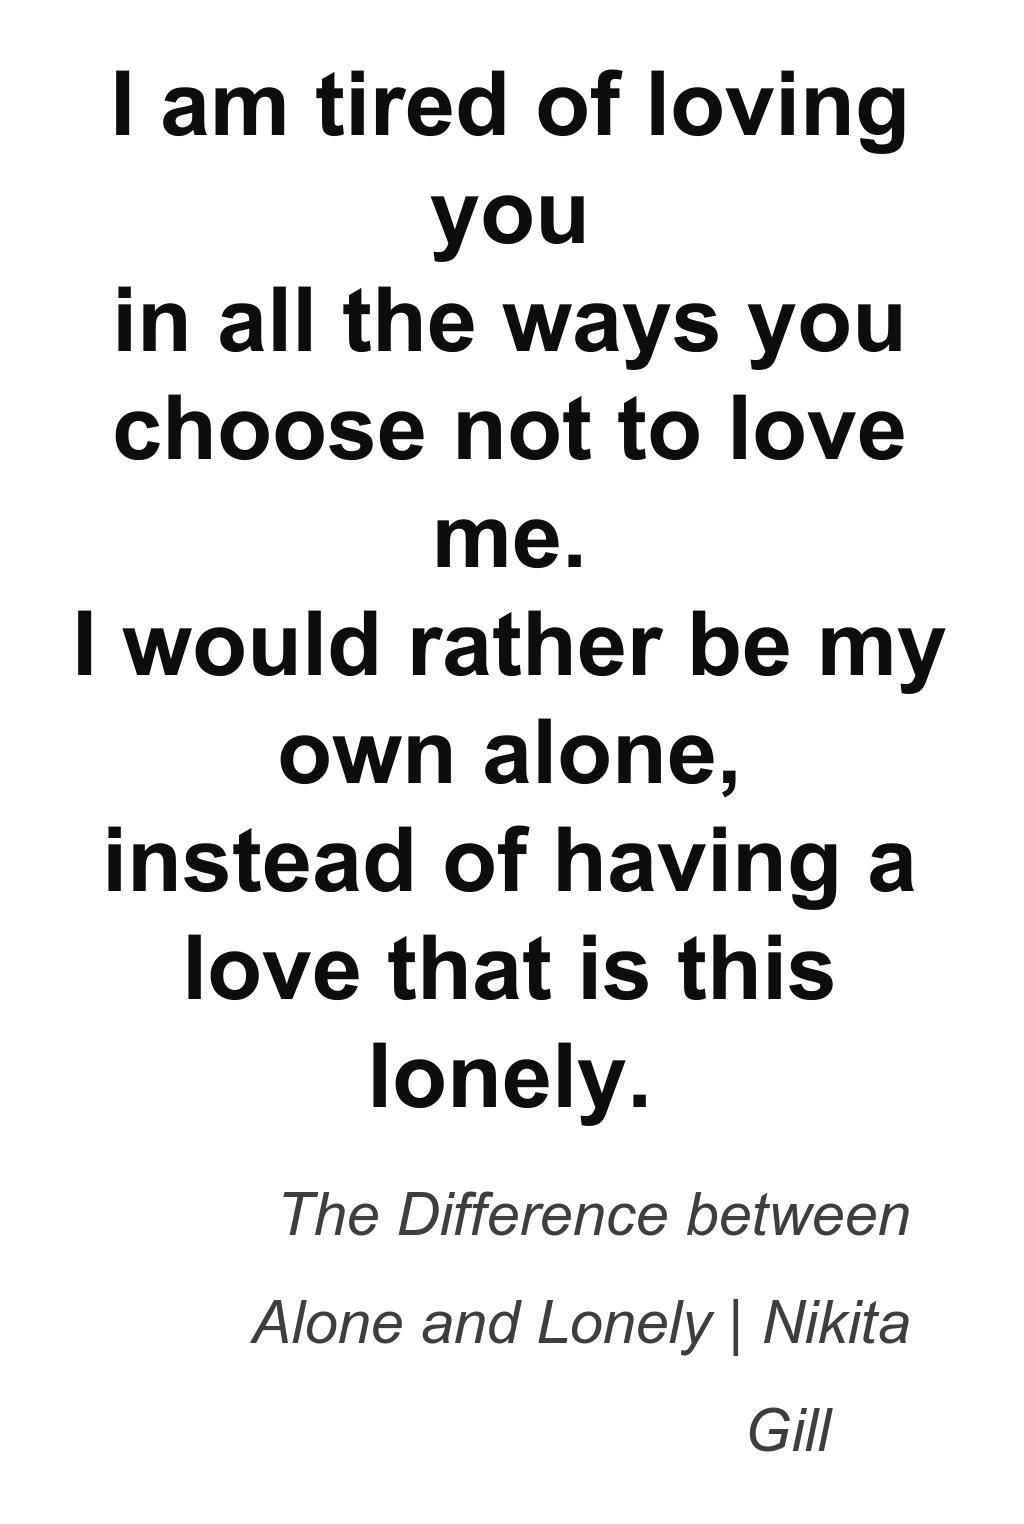 Image result for a difference between lonely and alone